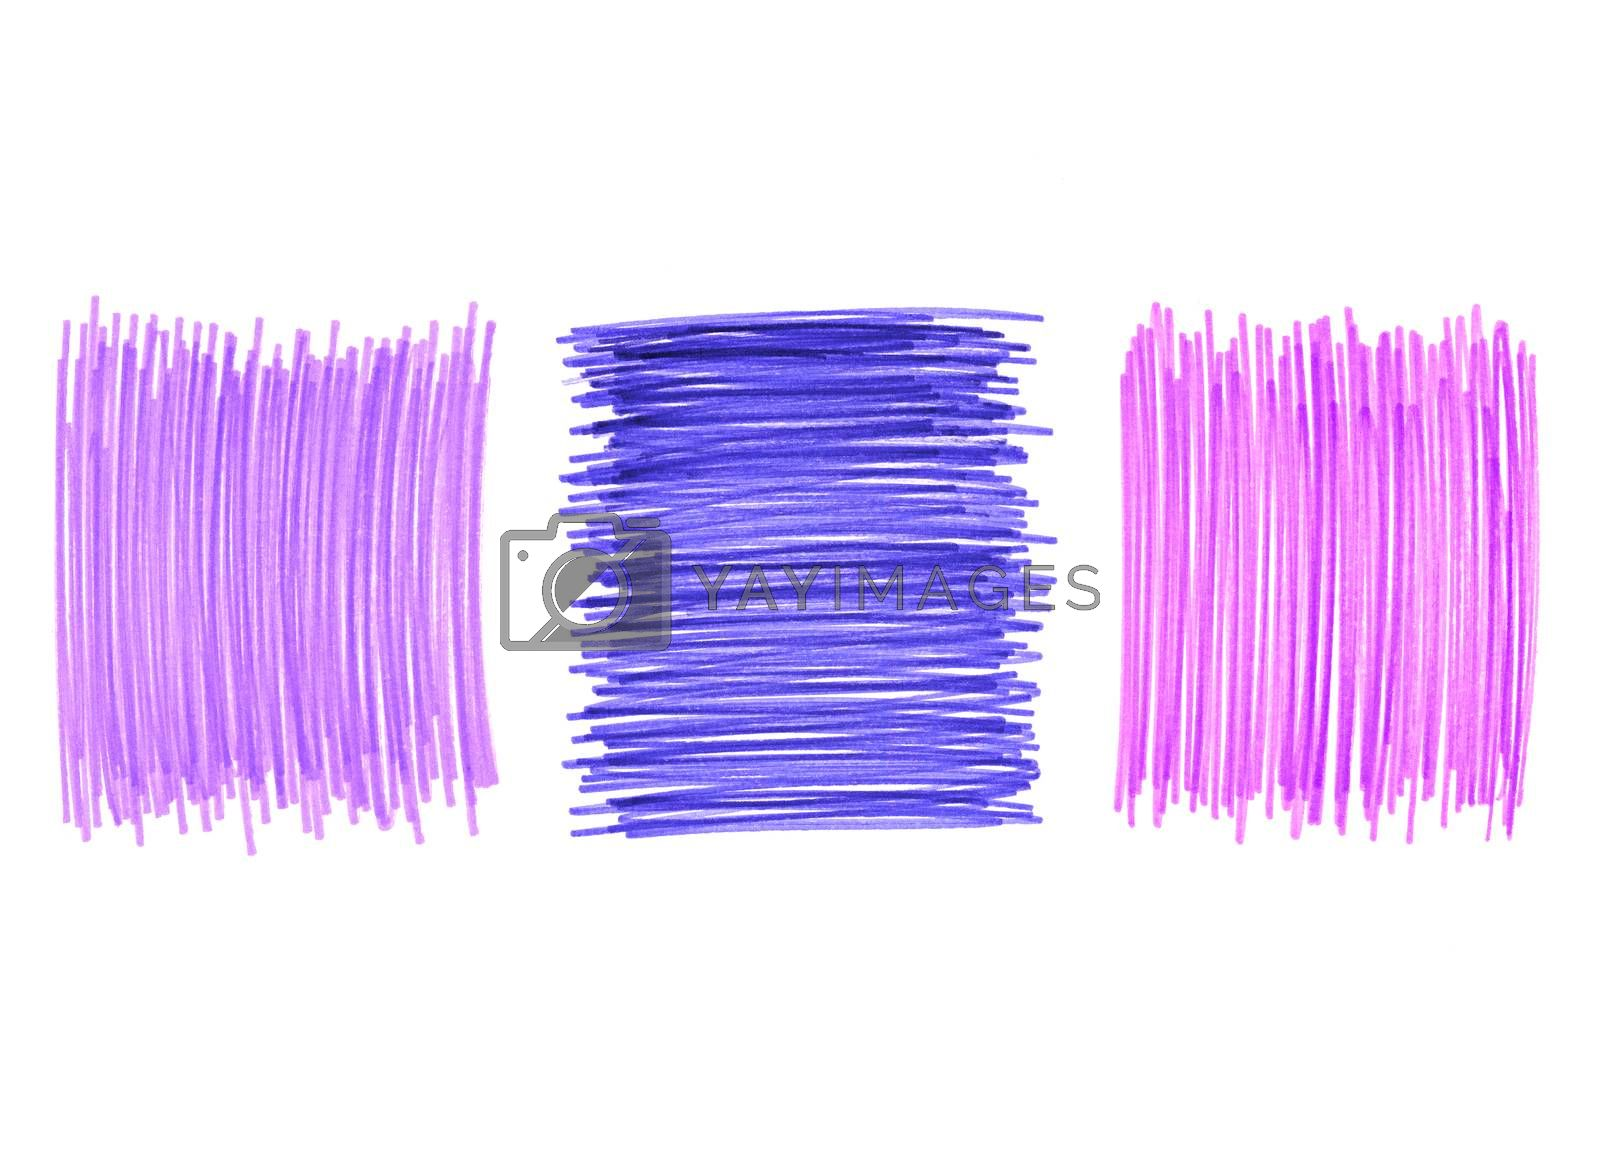 Abstract color drawn elements for design on white background